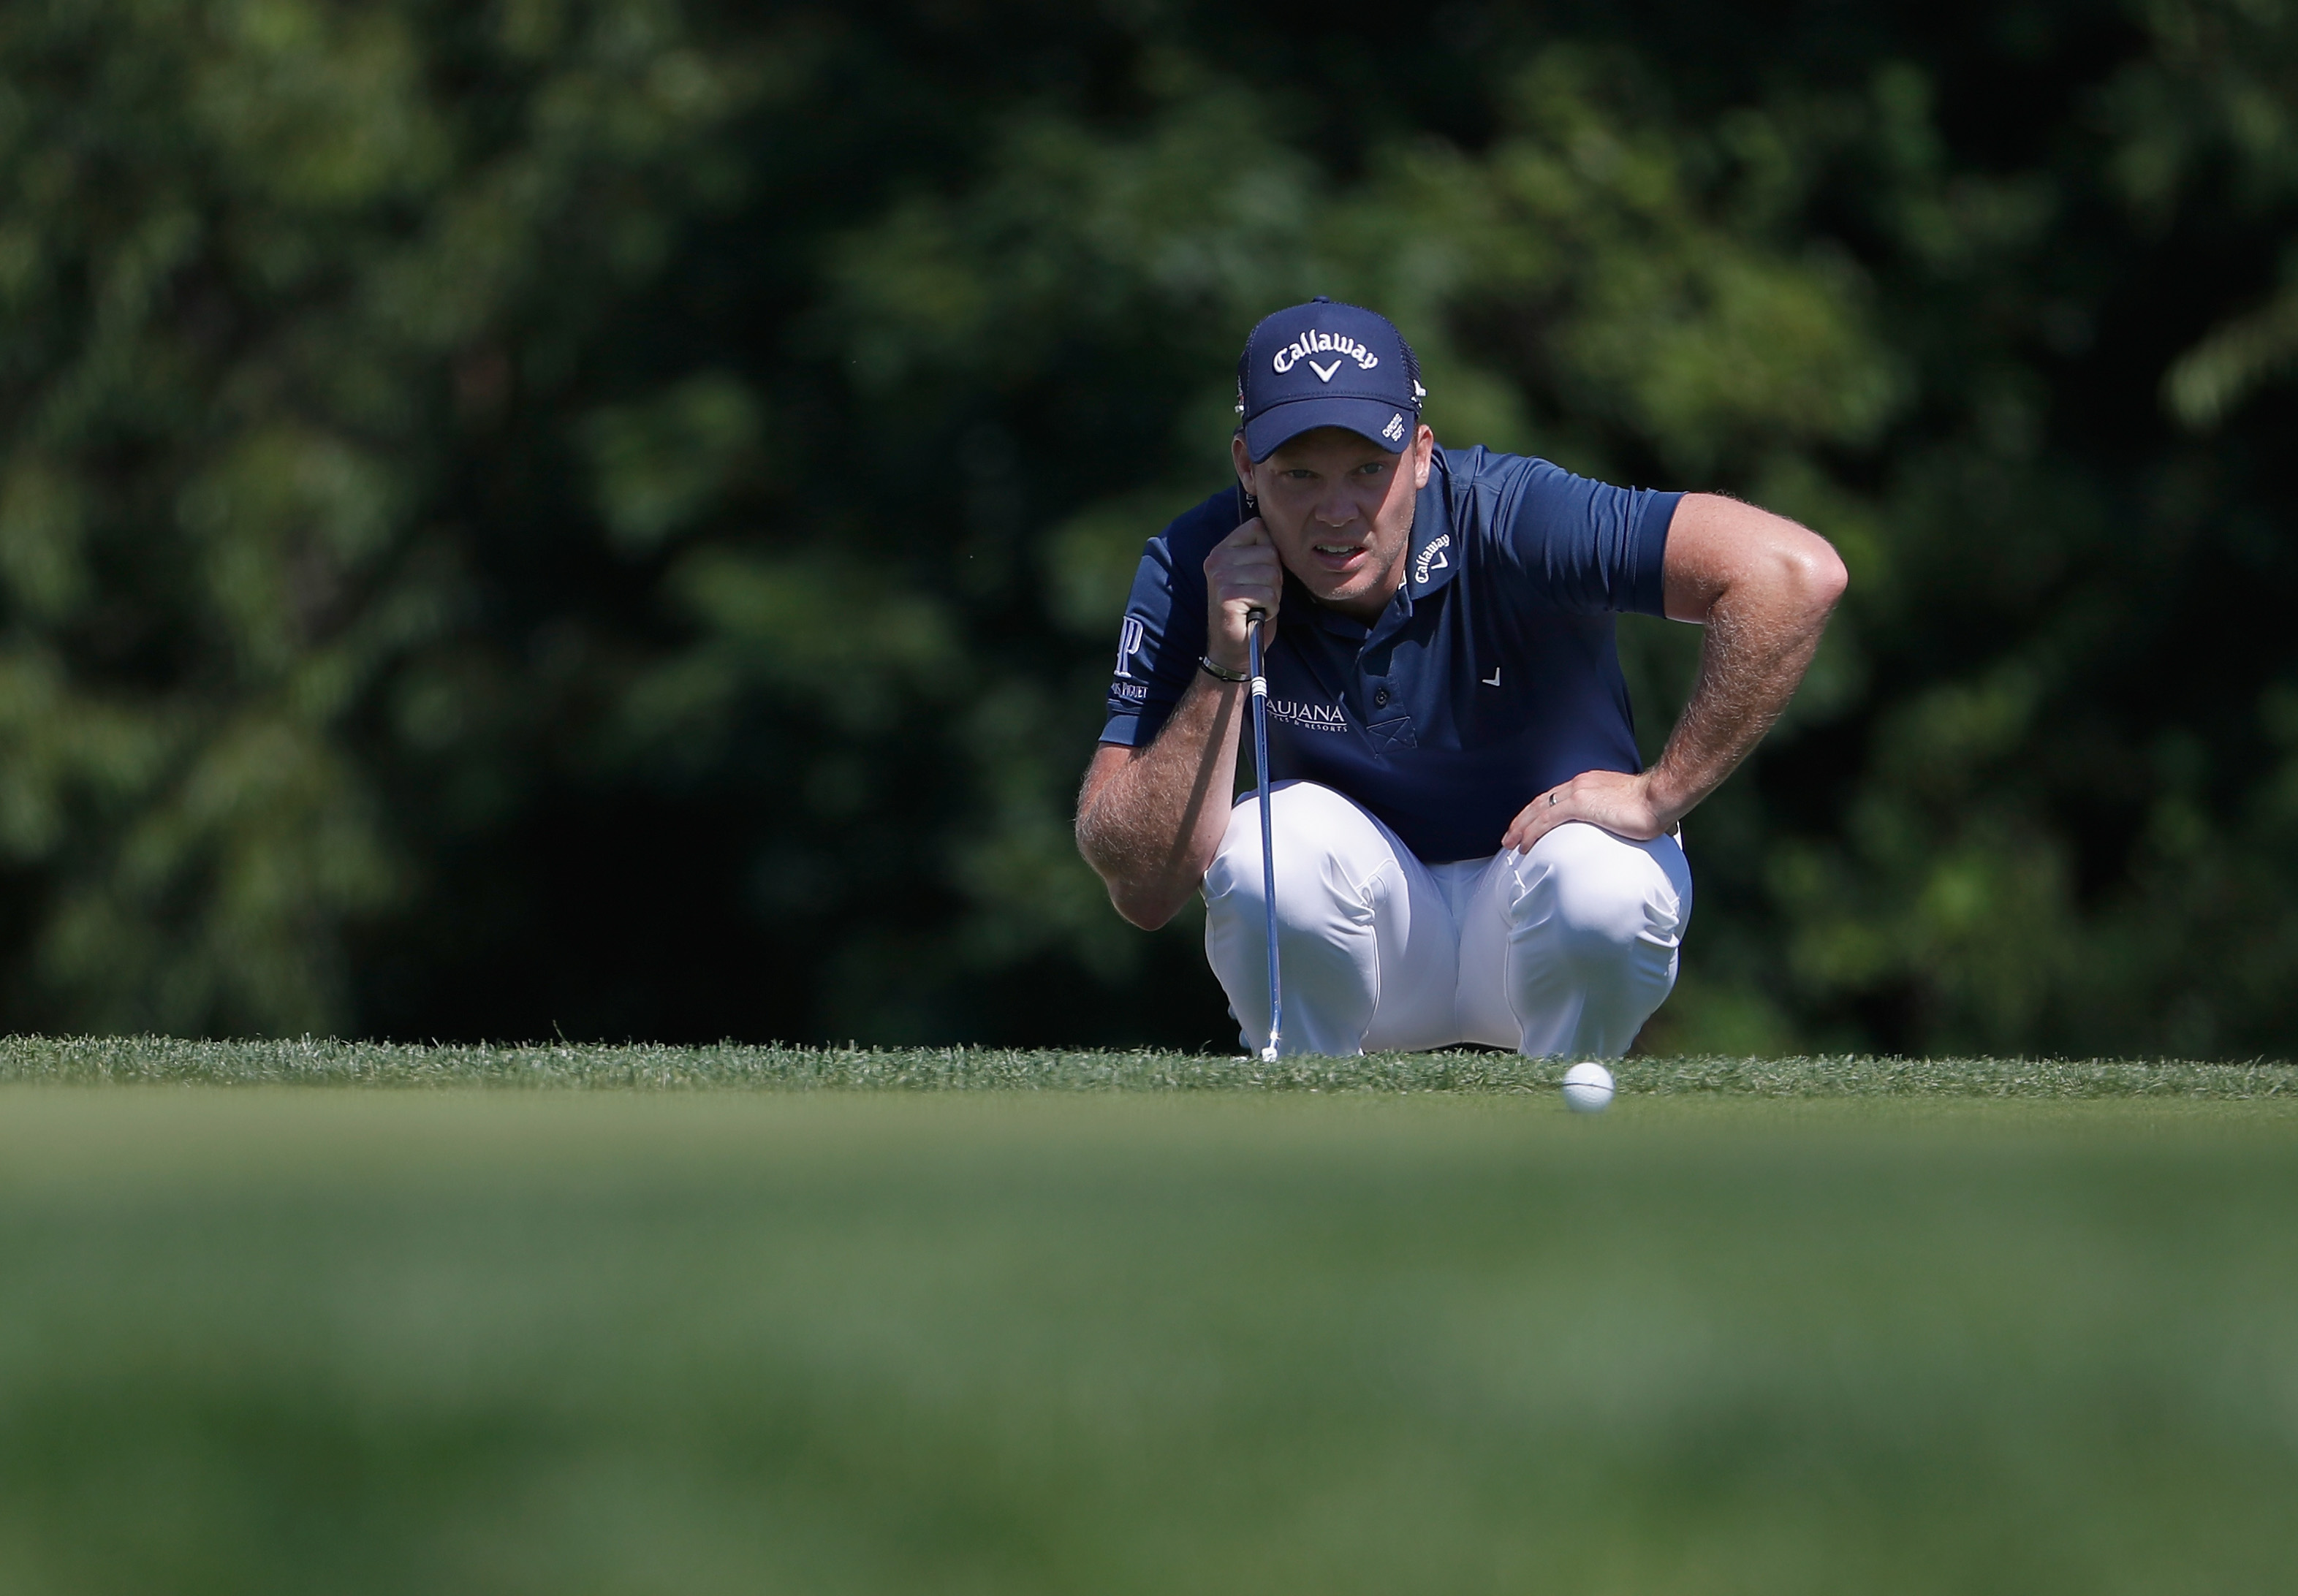 Danny Willett did not have a good week on the greens at Oakmont Country Club. (Getty Images)